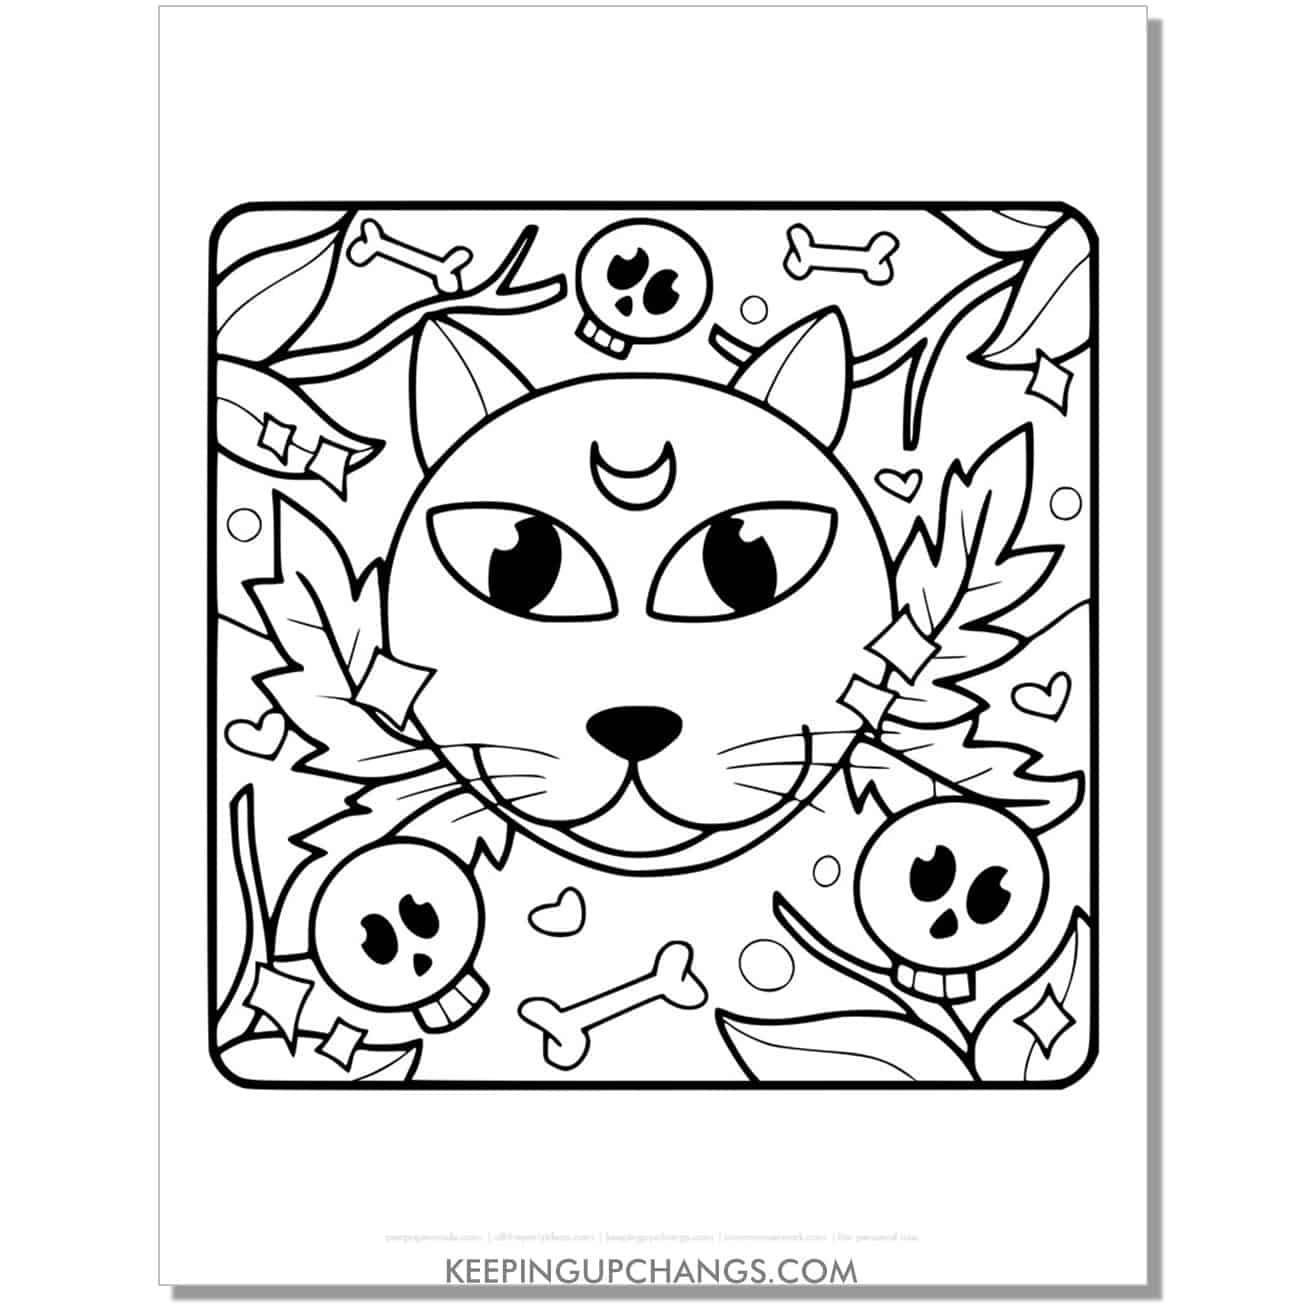 mystic halloween cat coloring page for kids.